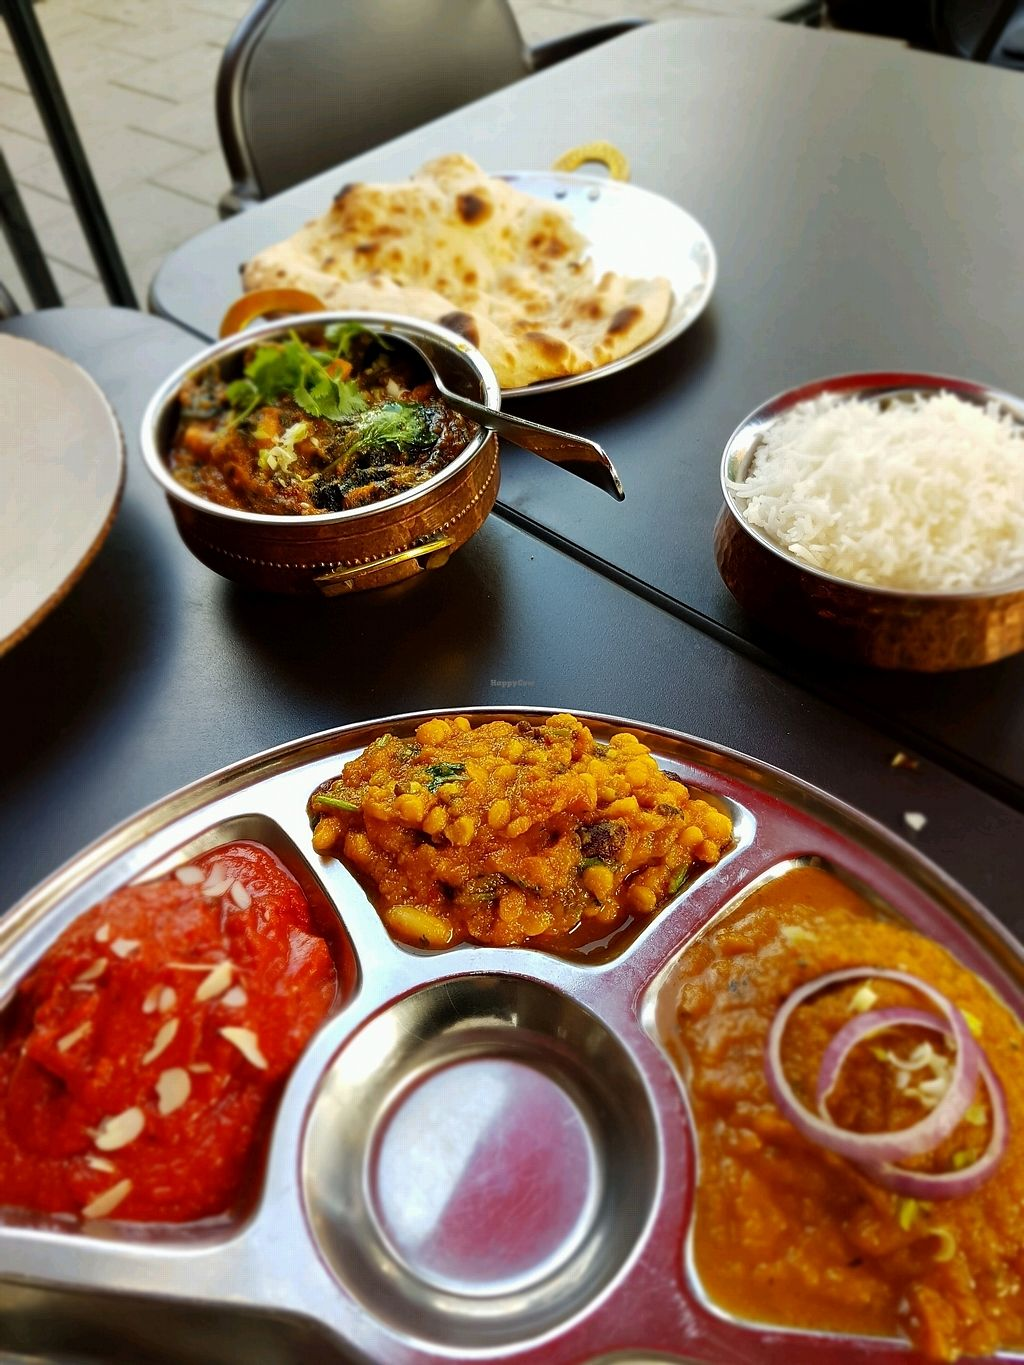 """Photo of Masala Masala  by <a href=""""/members/profile/Rezlajo"""">Rezlajo</a> <br/>Main  <br/> December 28, 2017  - <a href='/contact/abuse/image/89960/339955'>Report</a>"""